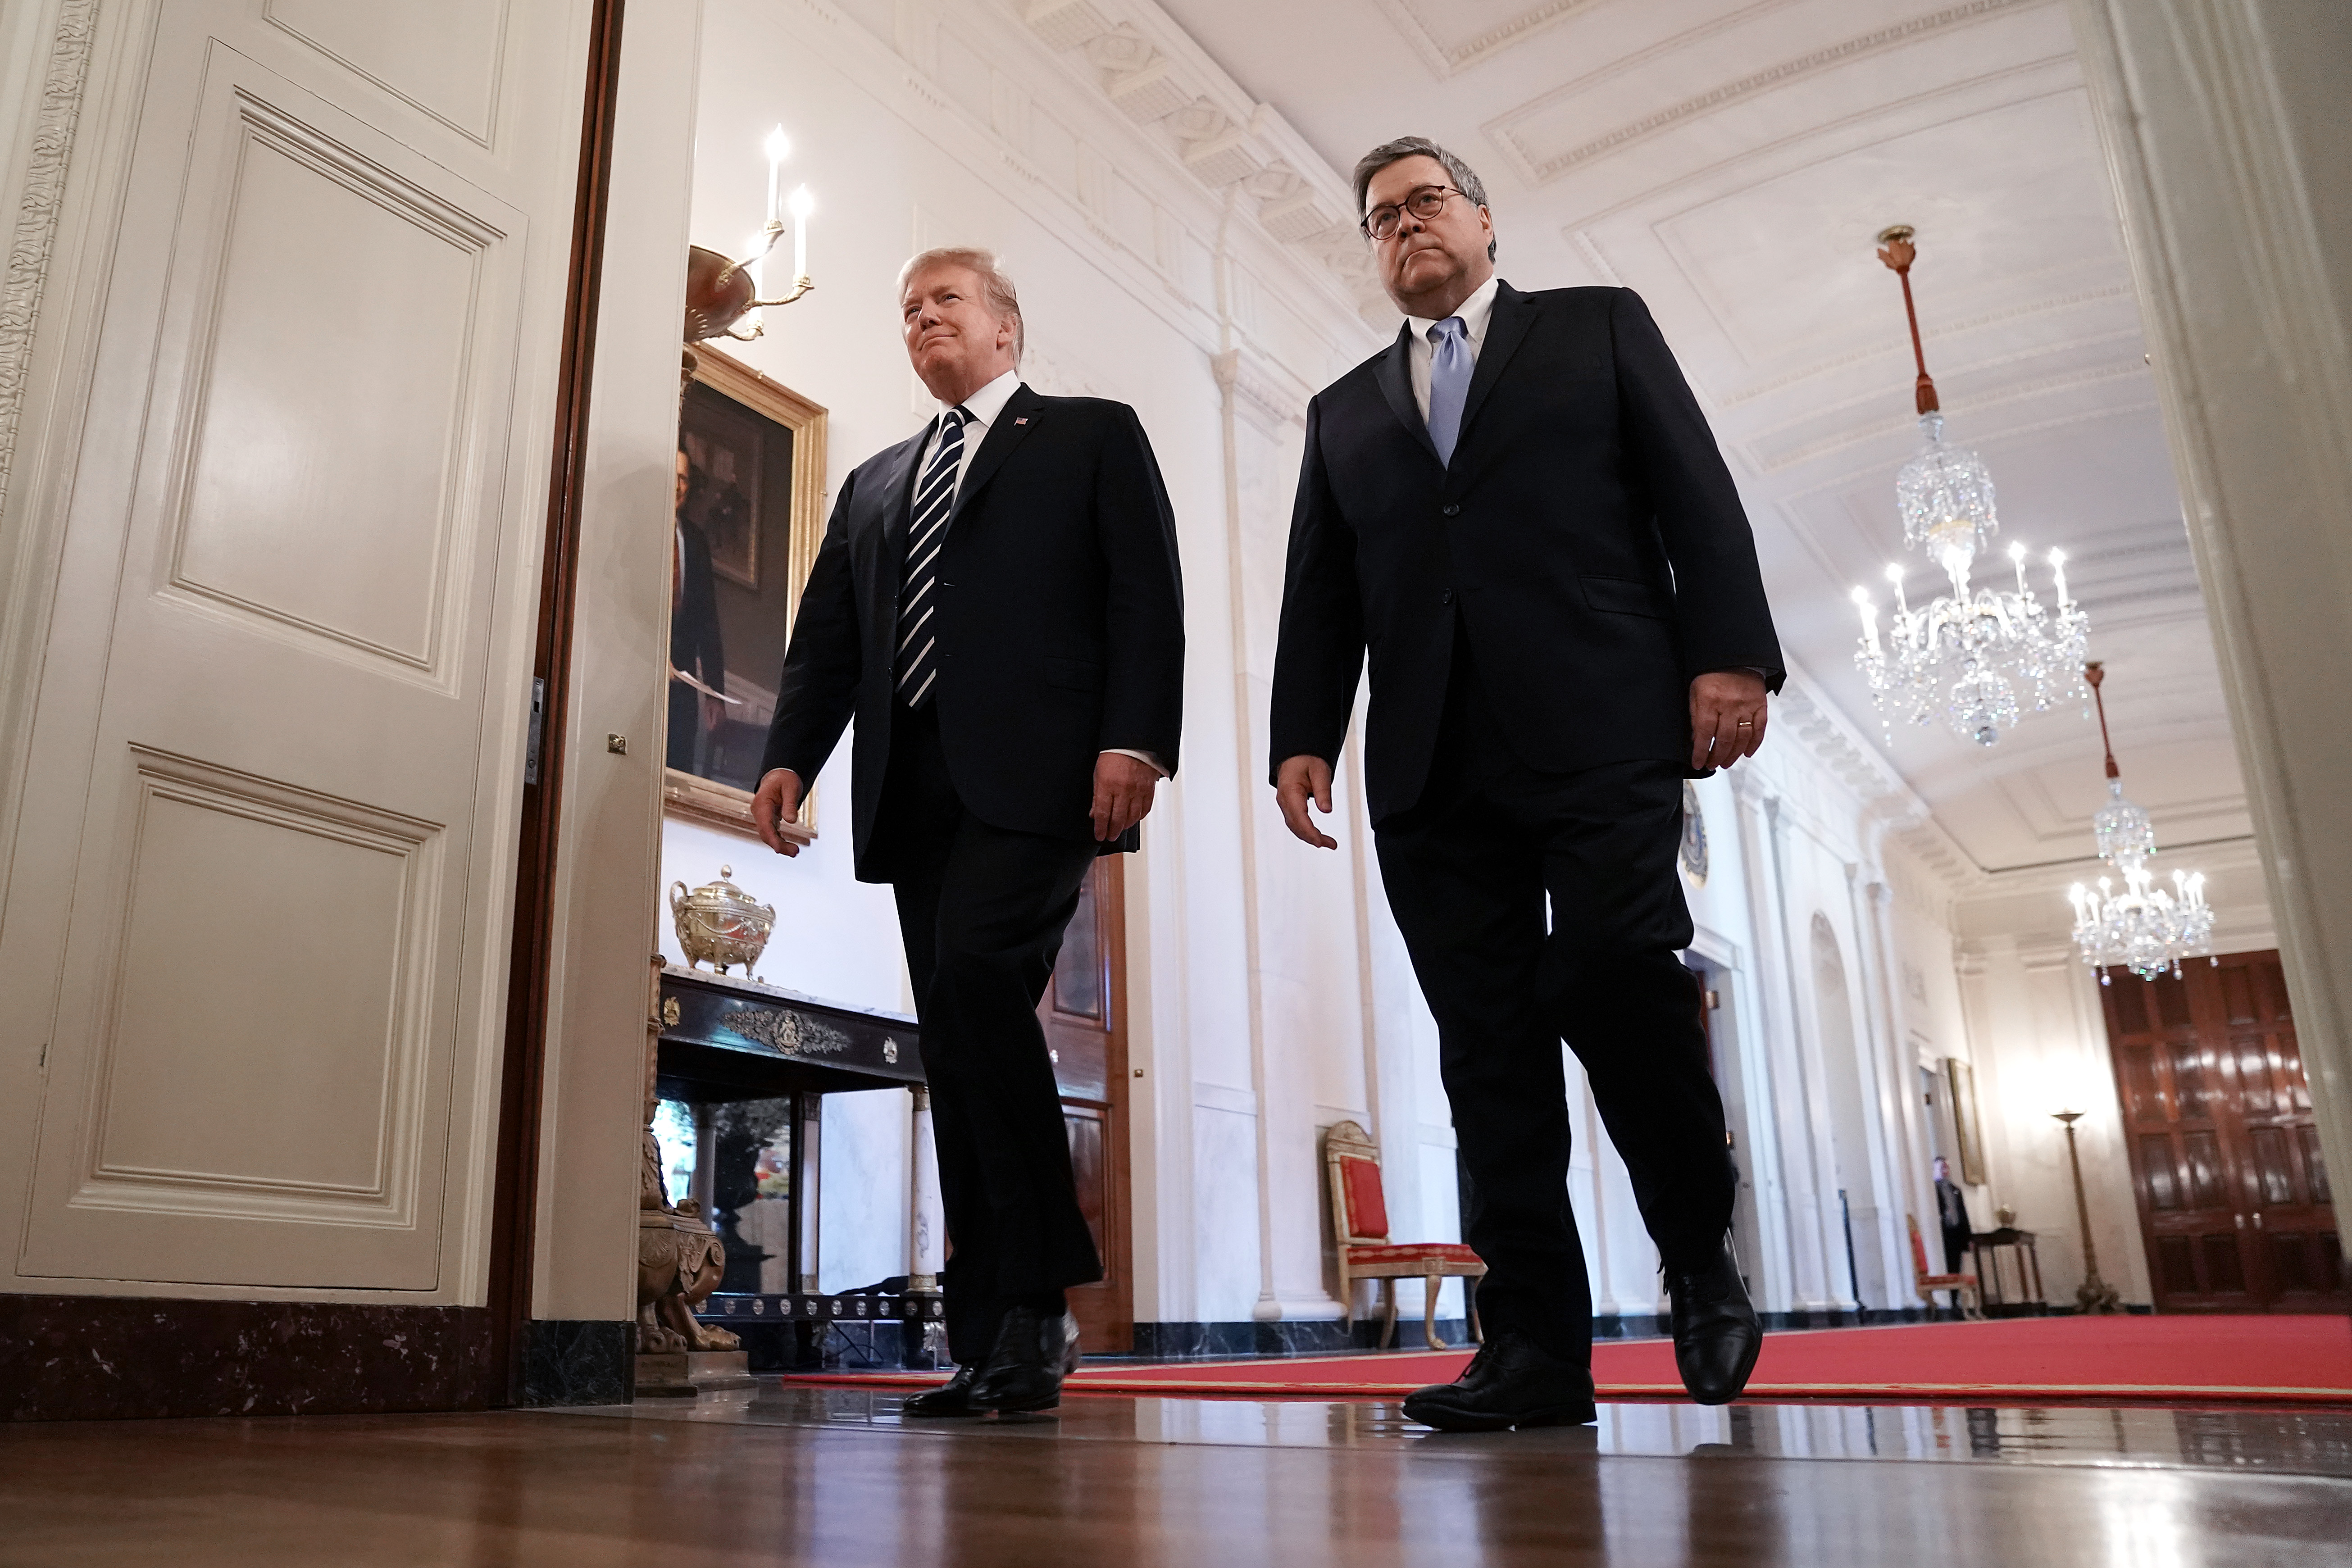 5 questions Attorney General William Barr should answer about Trump's call with President Volodymyr Zelensky